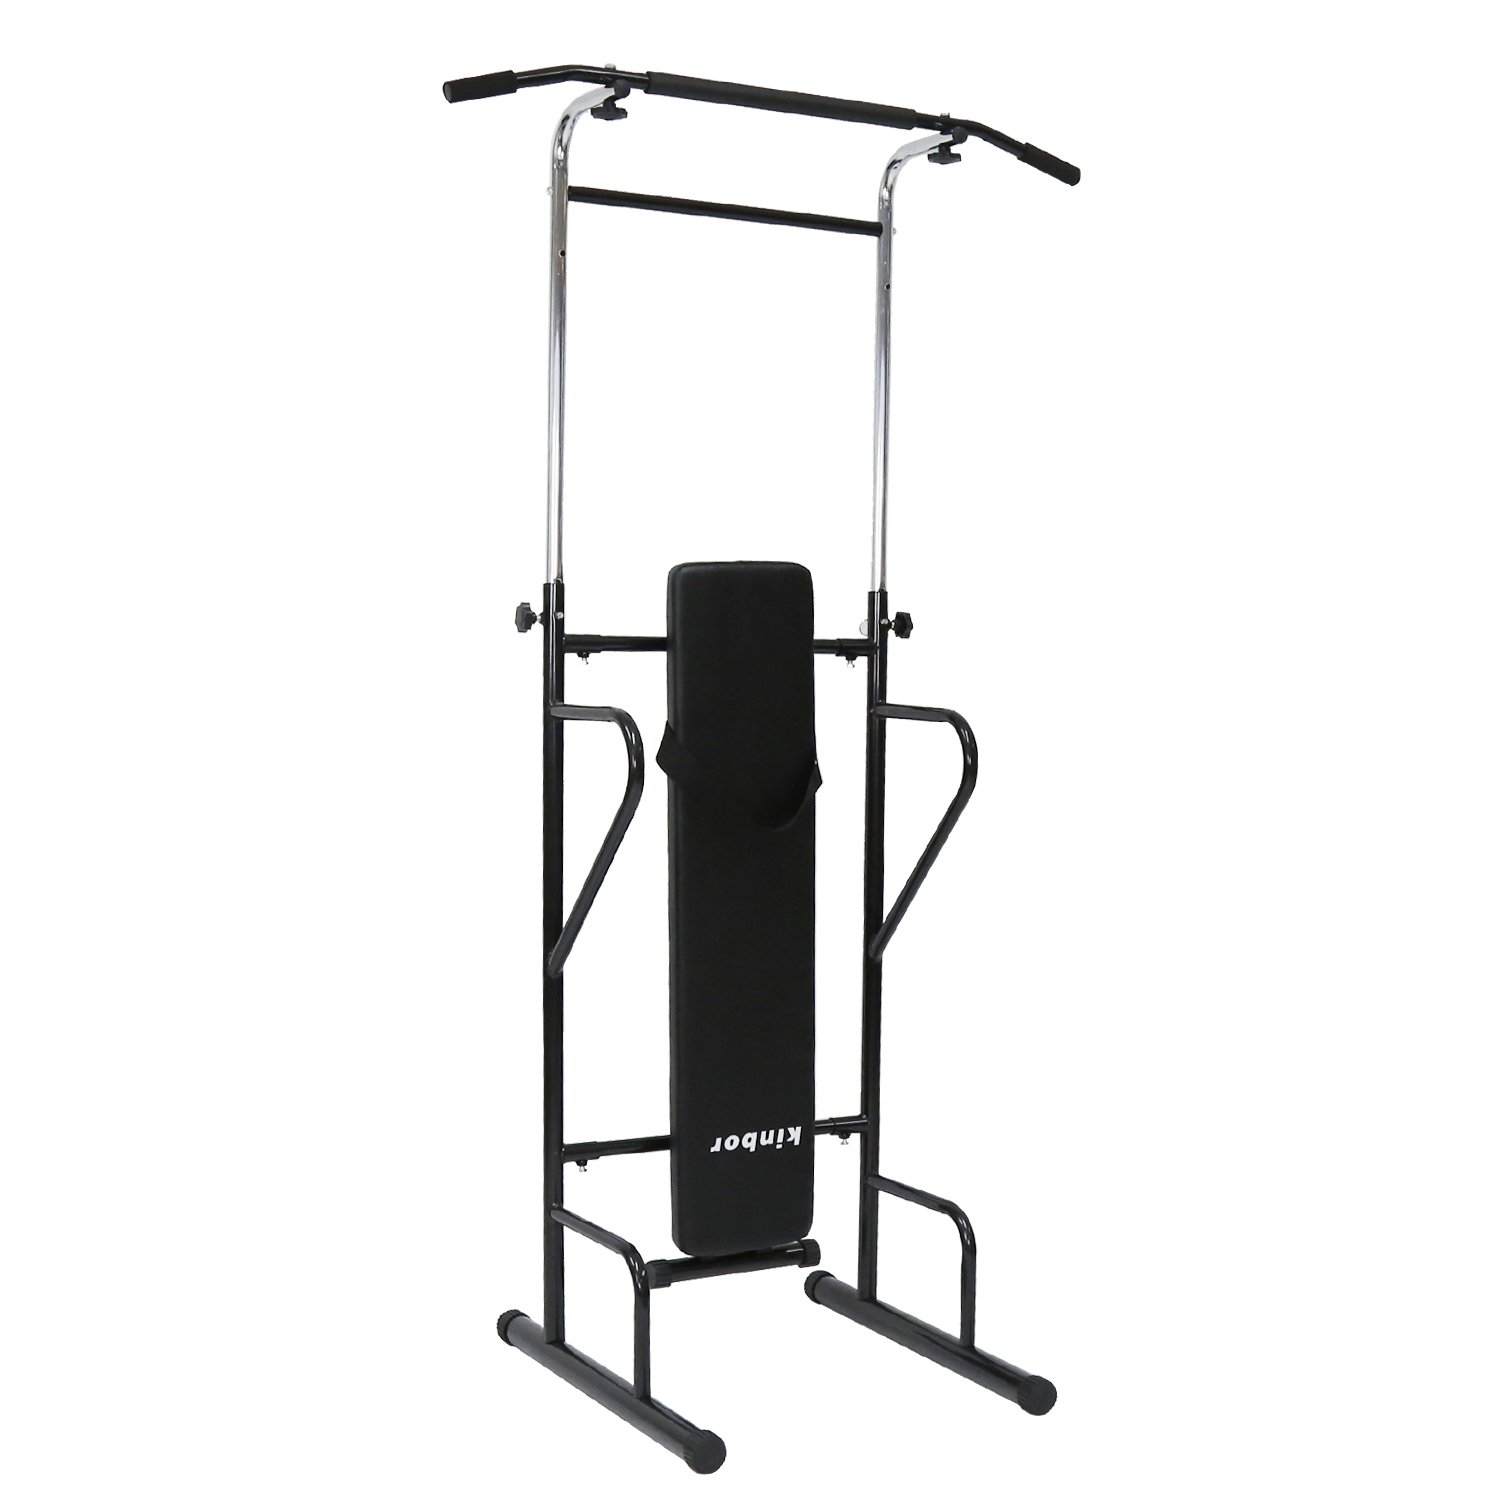 Kinbor Pull up Stand Full Body Adjustable Power Tower Strength Power Tower Multi Fitness Workout Station for Home Gym Indoor Outdoor by Kinbor